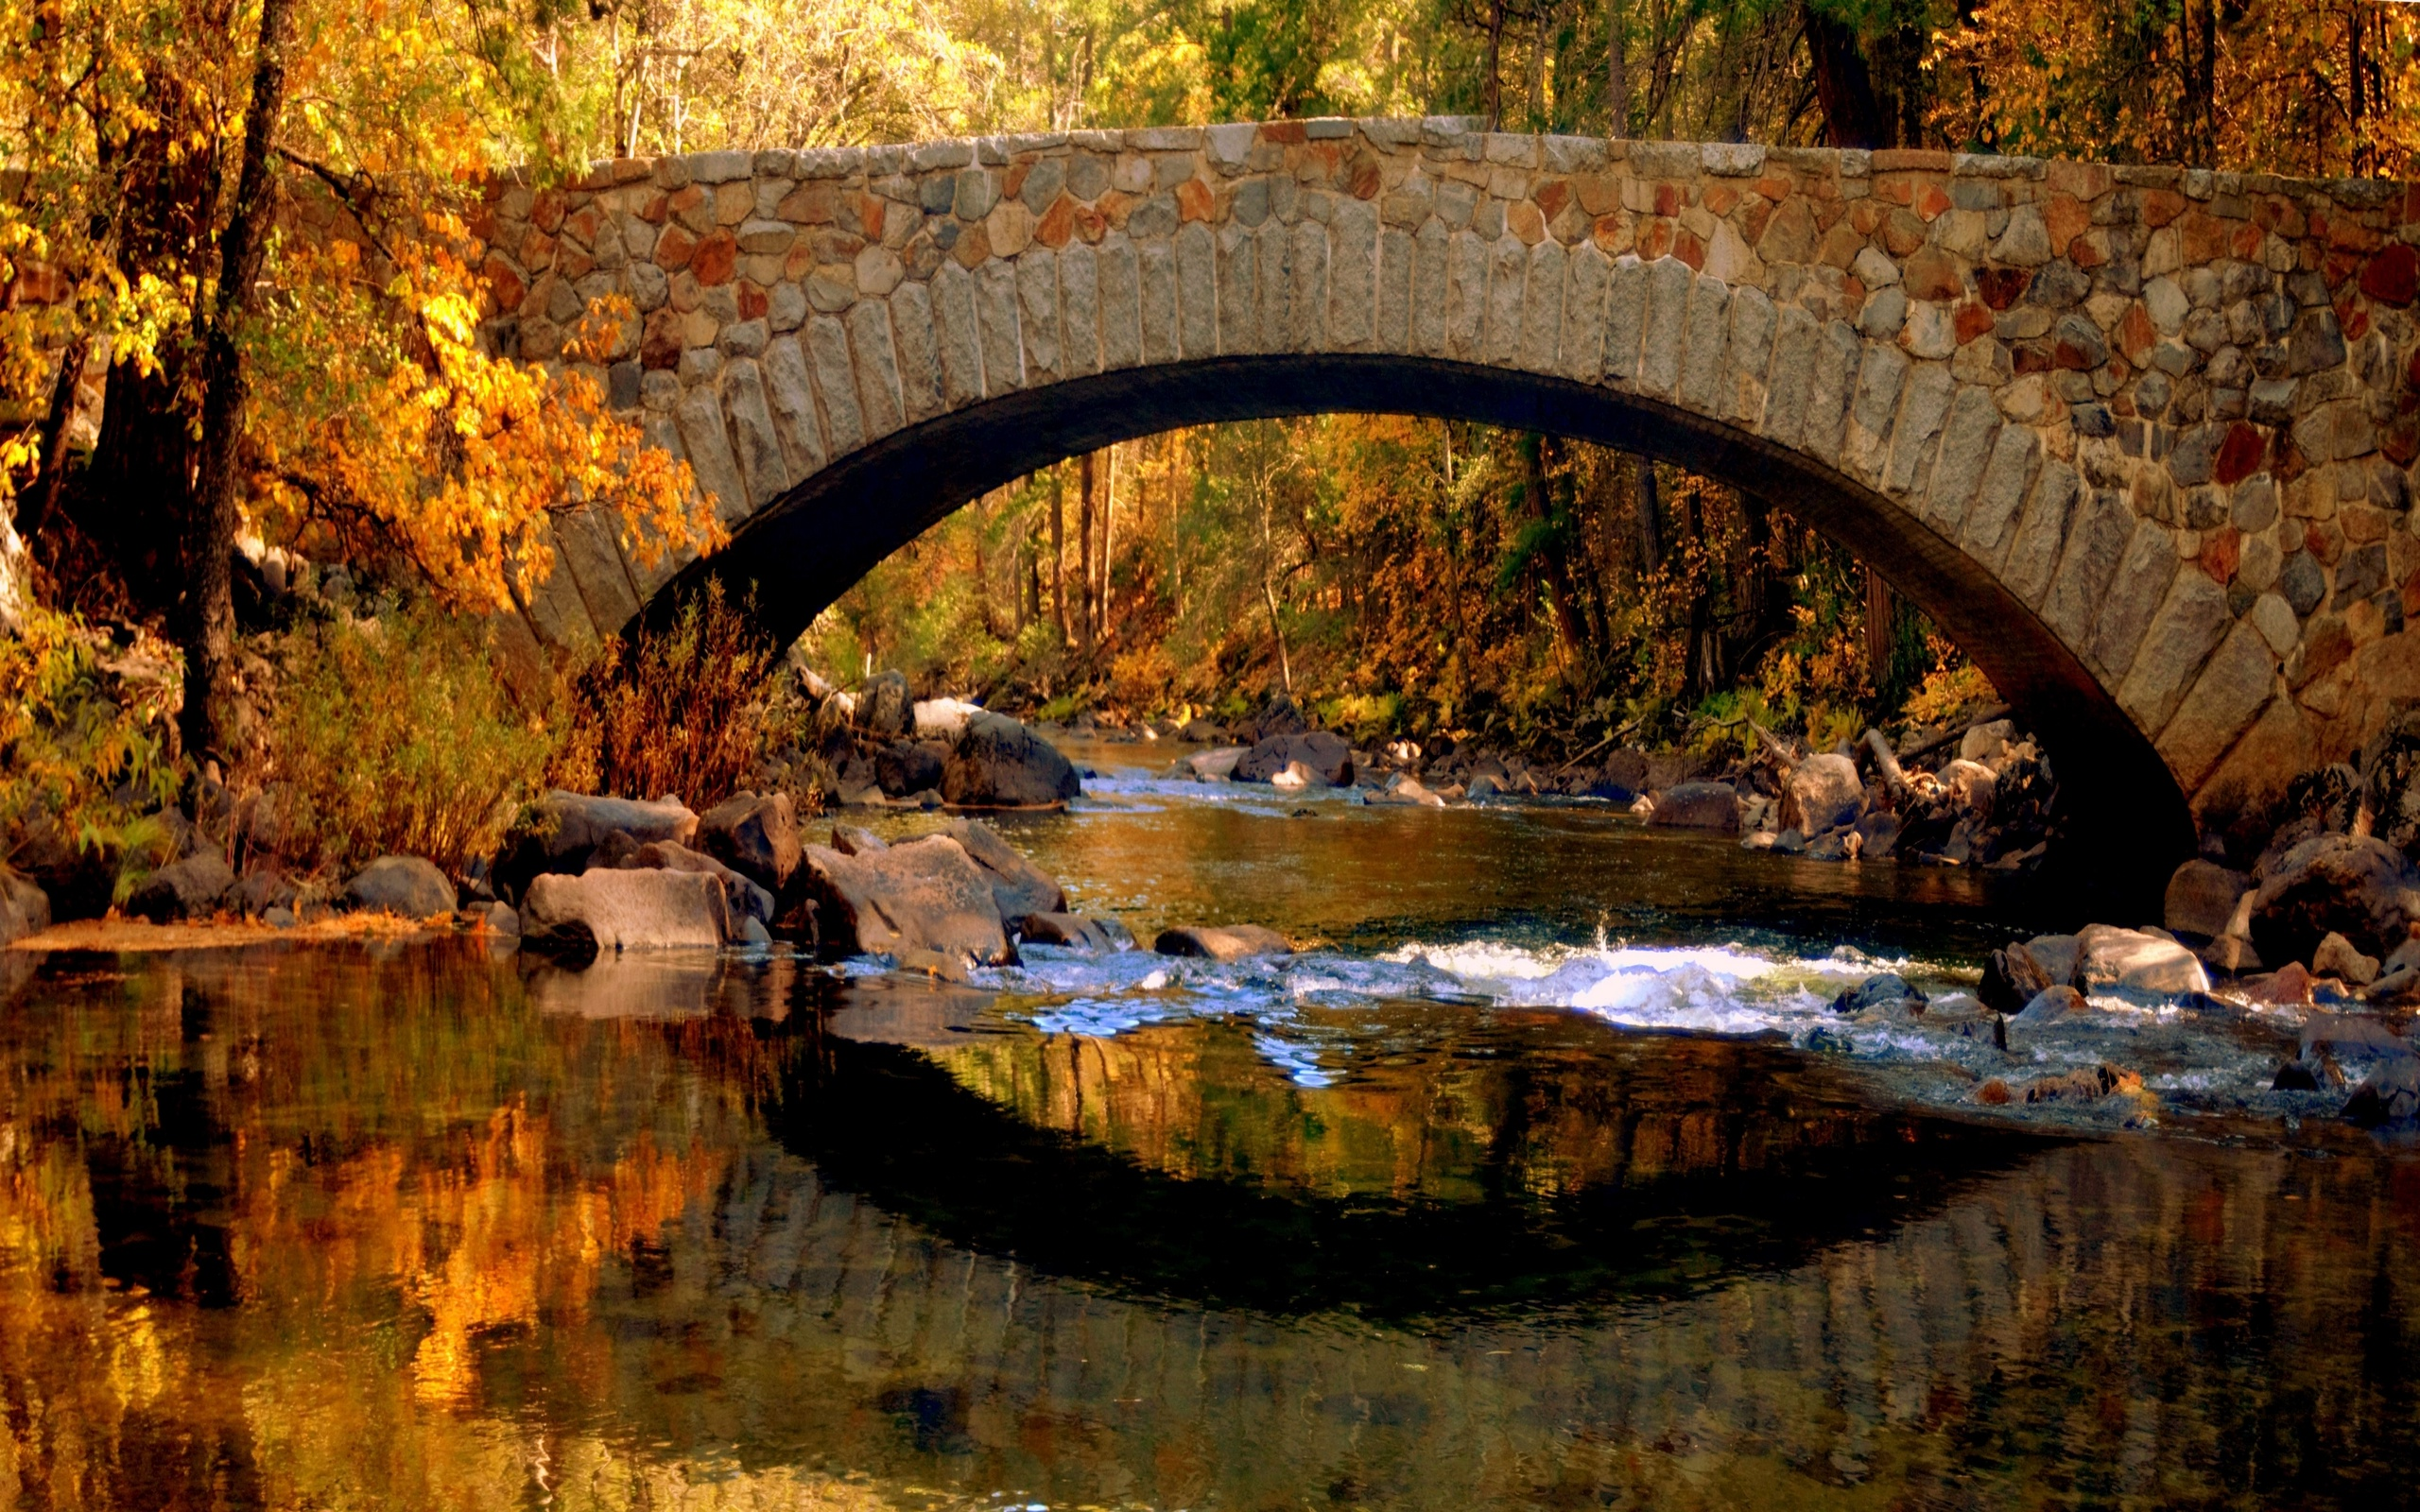 Stone bridge over the river